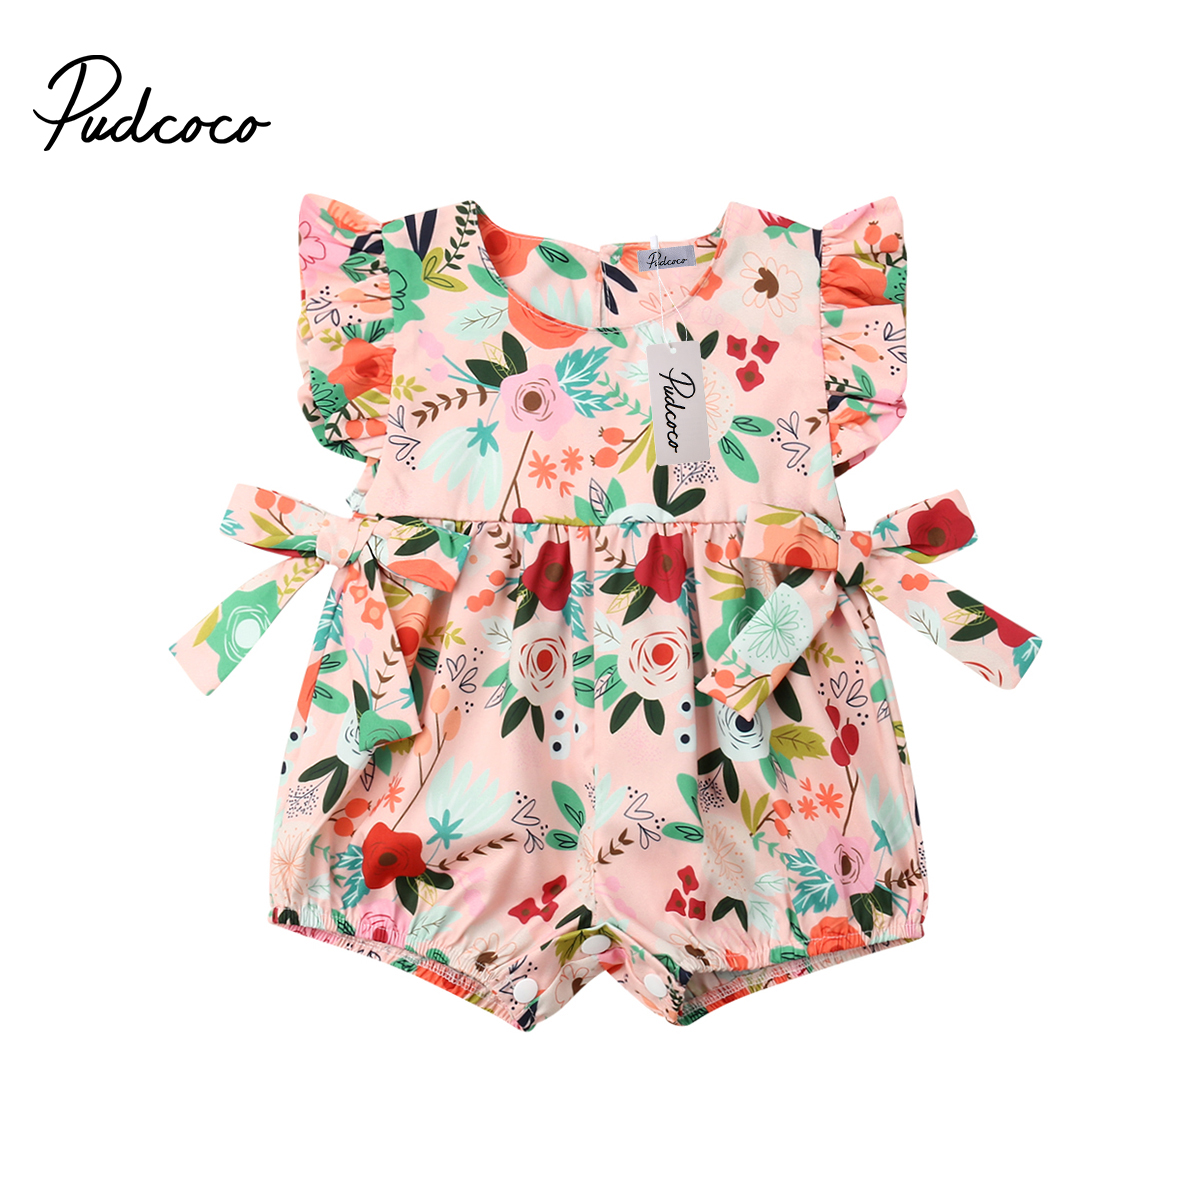 2019 Baby Girl Summer Clothing Flower Ruffle Bow Romper Jumpsuit Outfits Sunsuit For Kid Clothes Toddler Children Newborn Infant